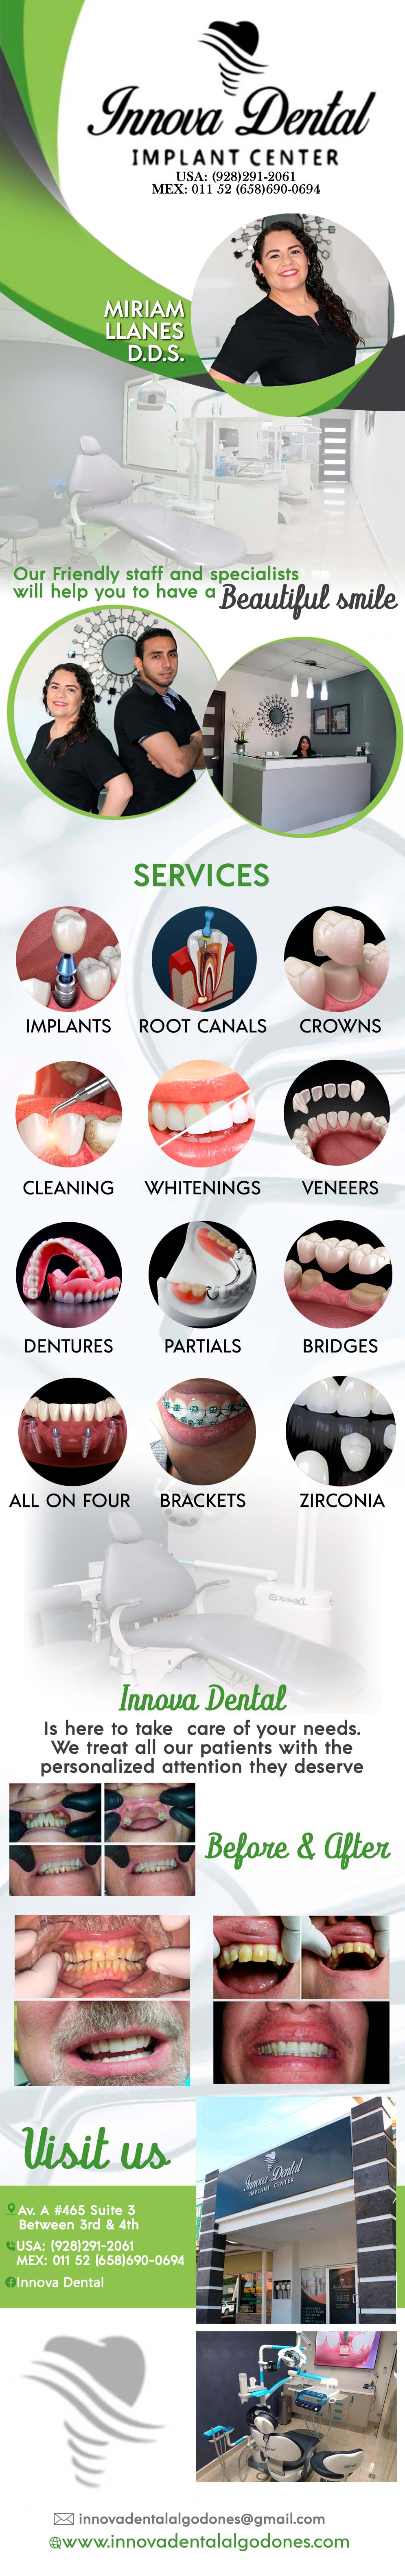 INNOVA DENTAL- Miryam Yanez D.D.S. in Algodones  in Algodones  Innova Dental, Implants, Root Canals,  Crowns,